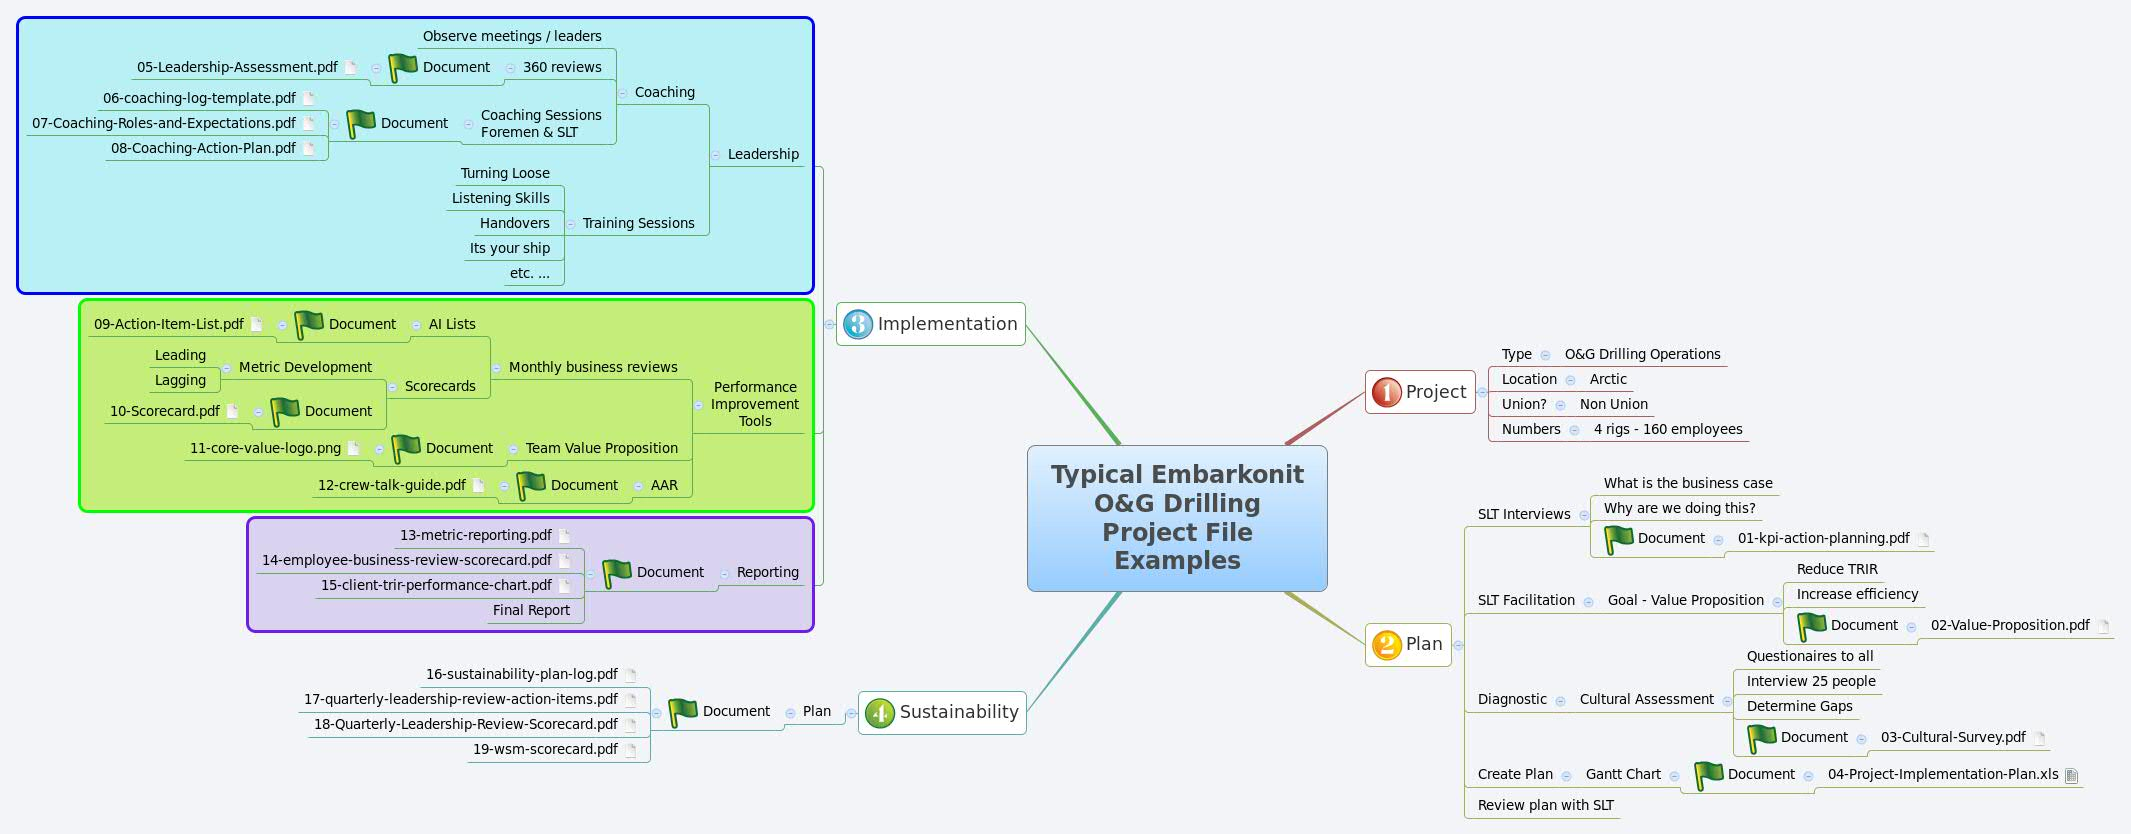 Typical Embarkonit O&G Drilling Project File Examples - XMind - Mind